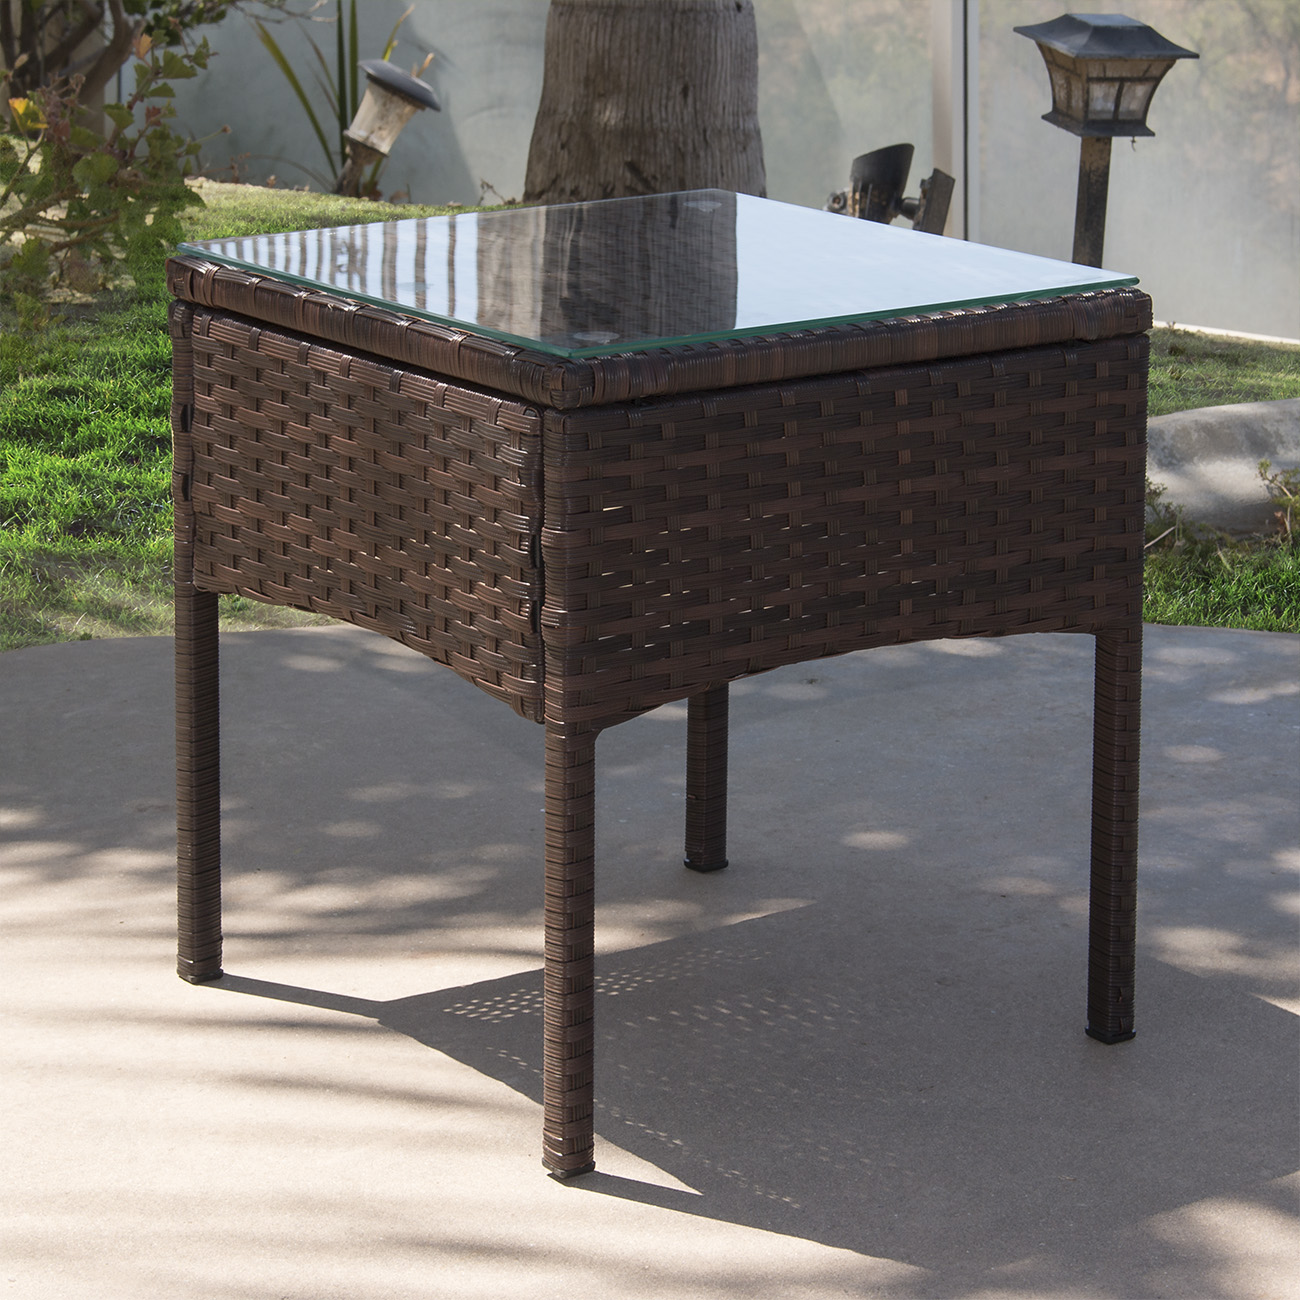 Brown Rattan Coffee Table Outdoor: 3pc Rattan Wicker Bistro Sofa Set Coffee Table Chair